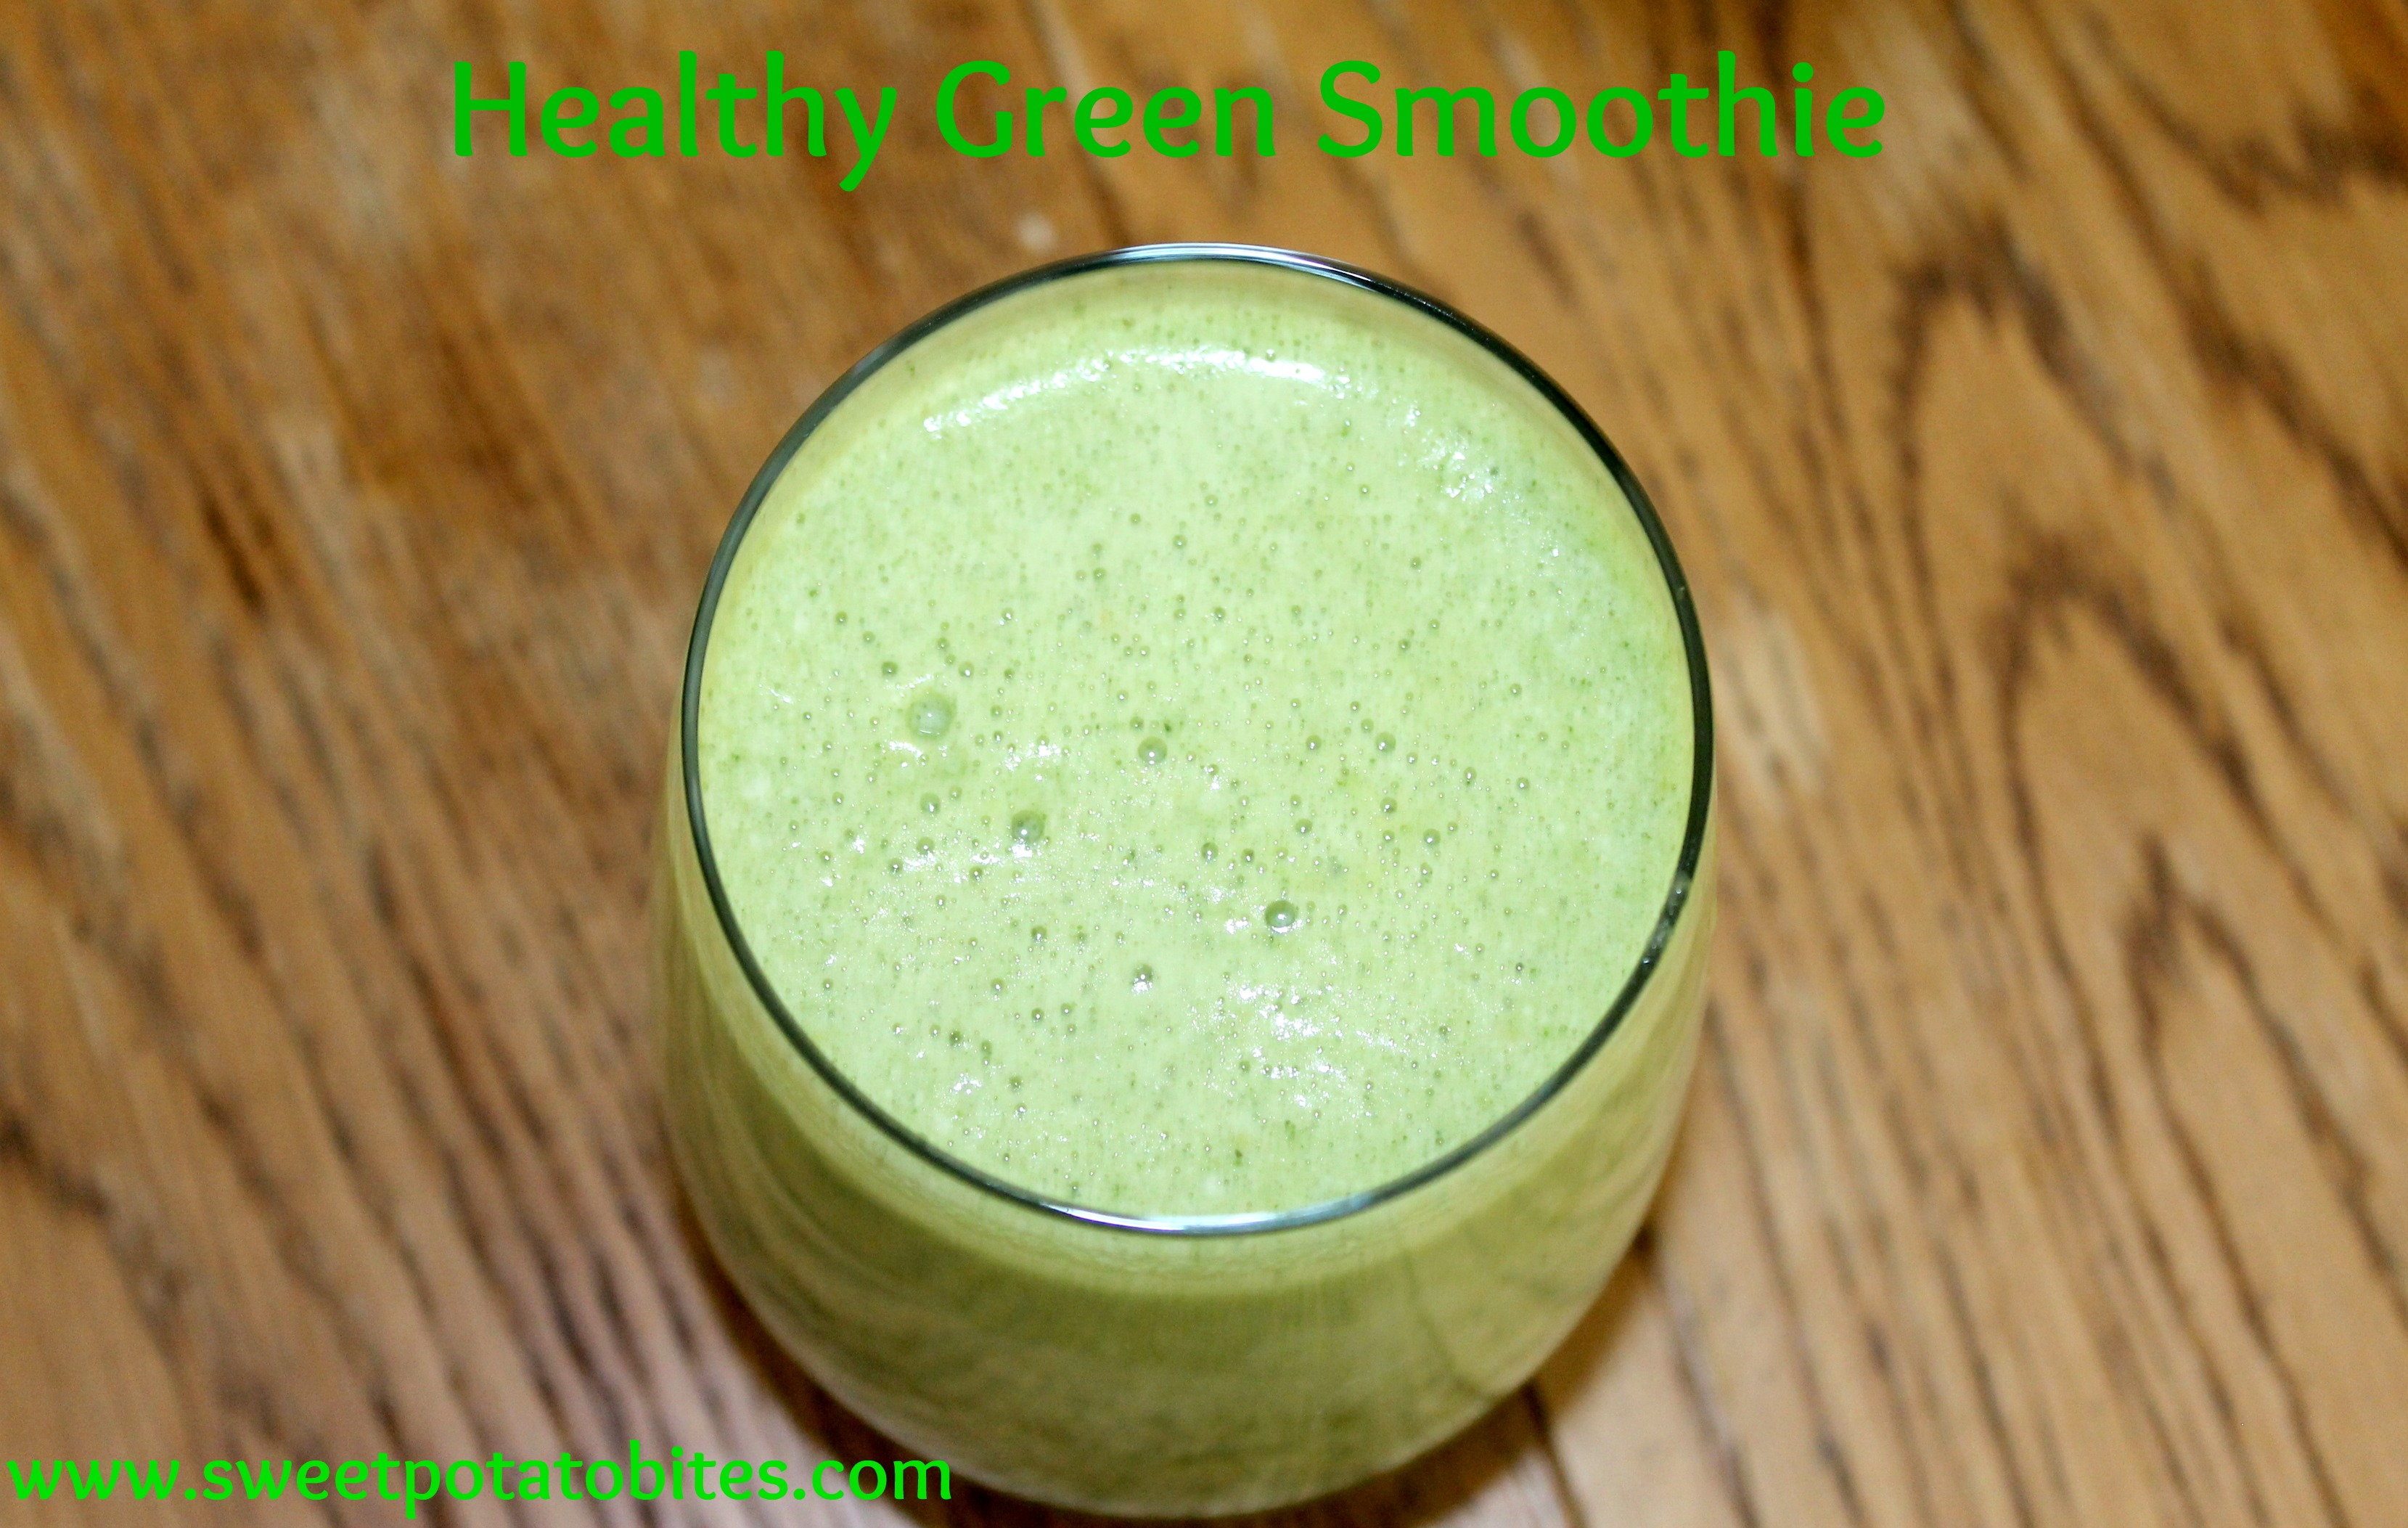 Healthy Green Smoothie pin